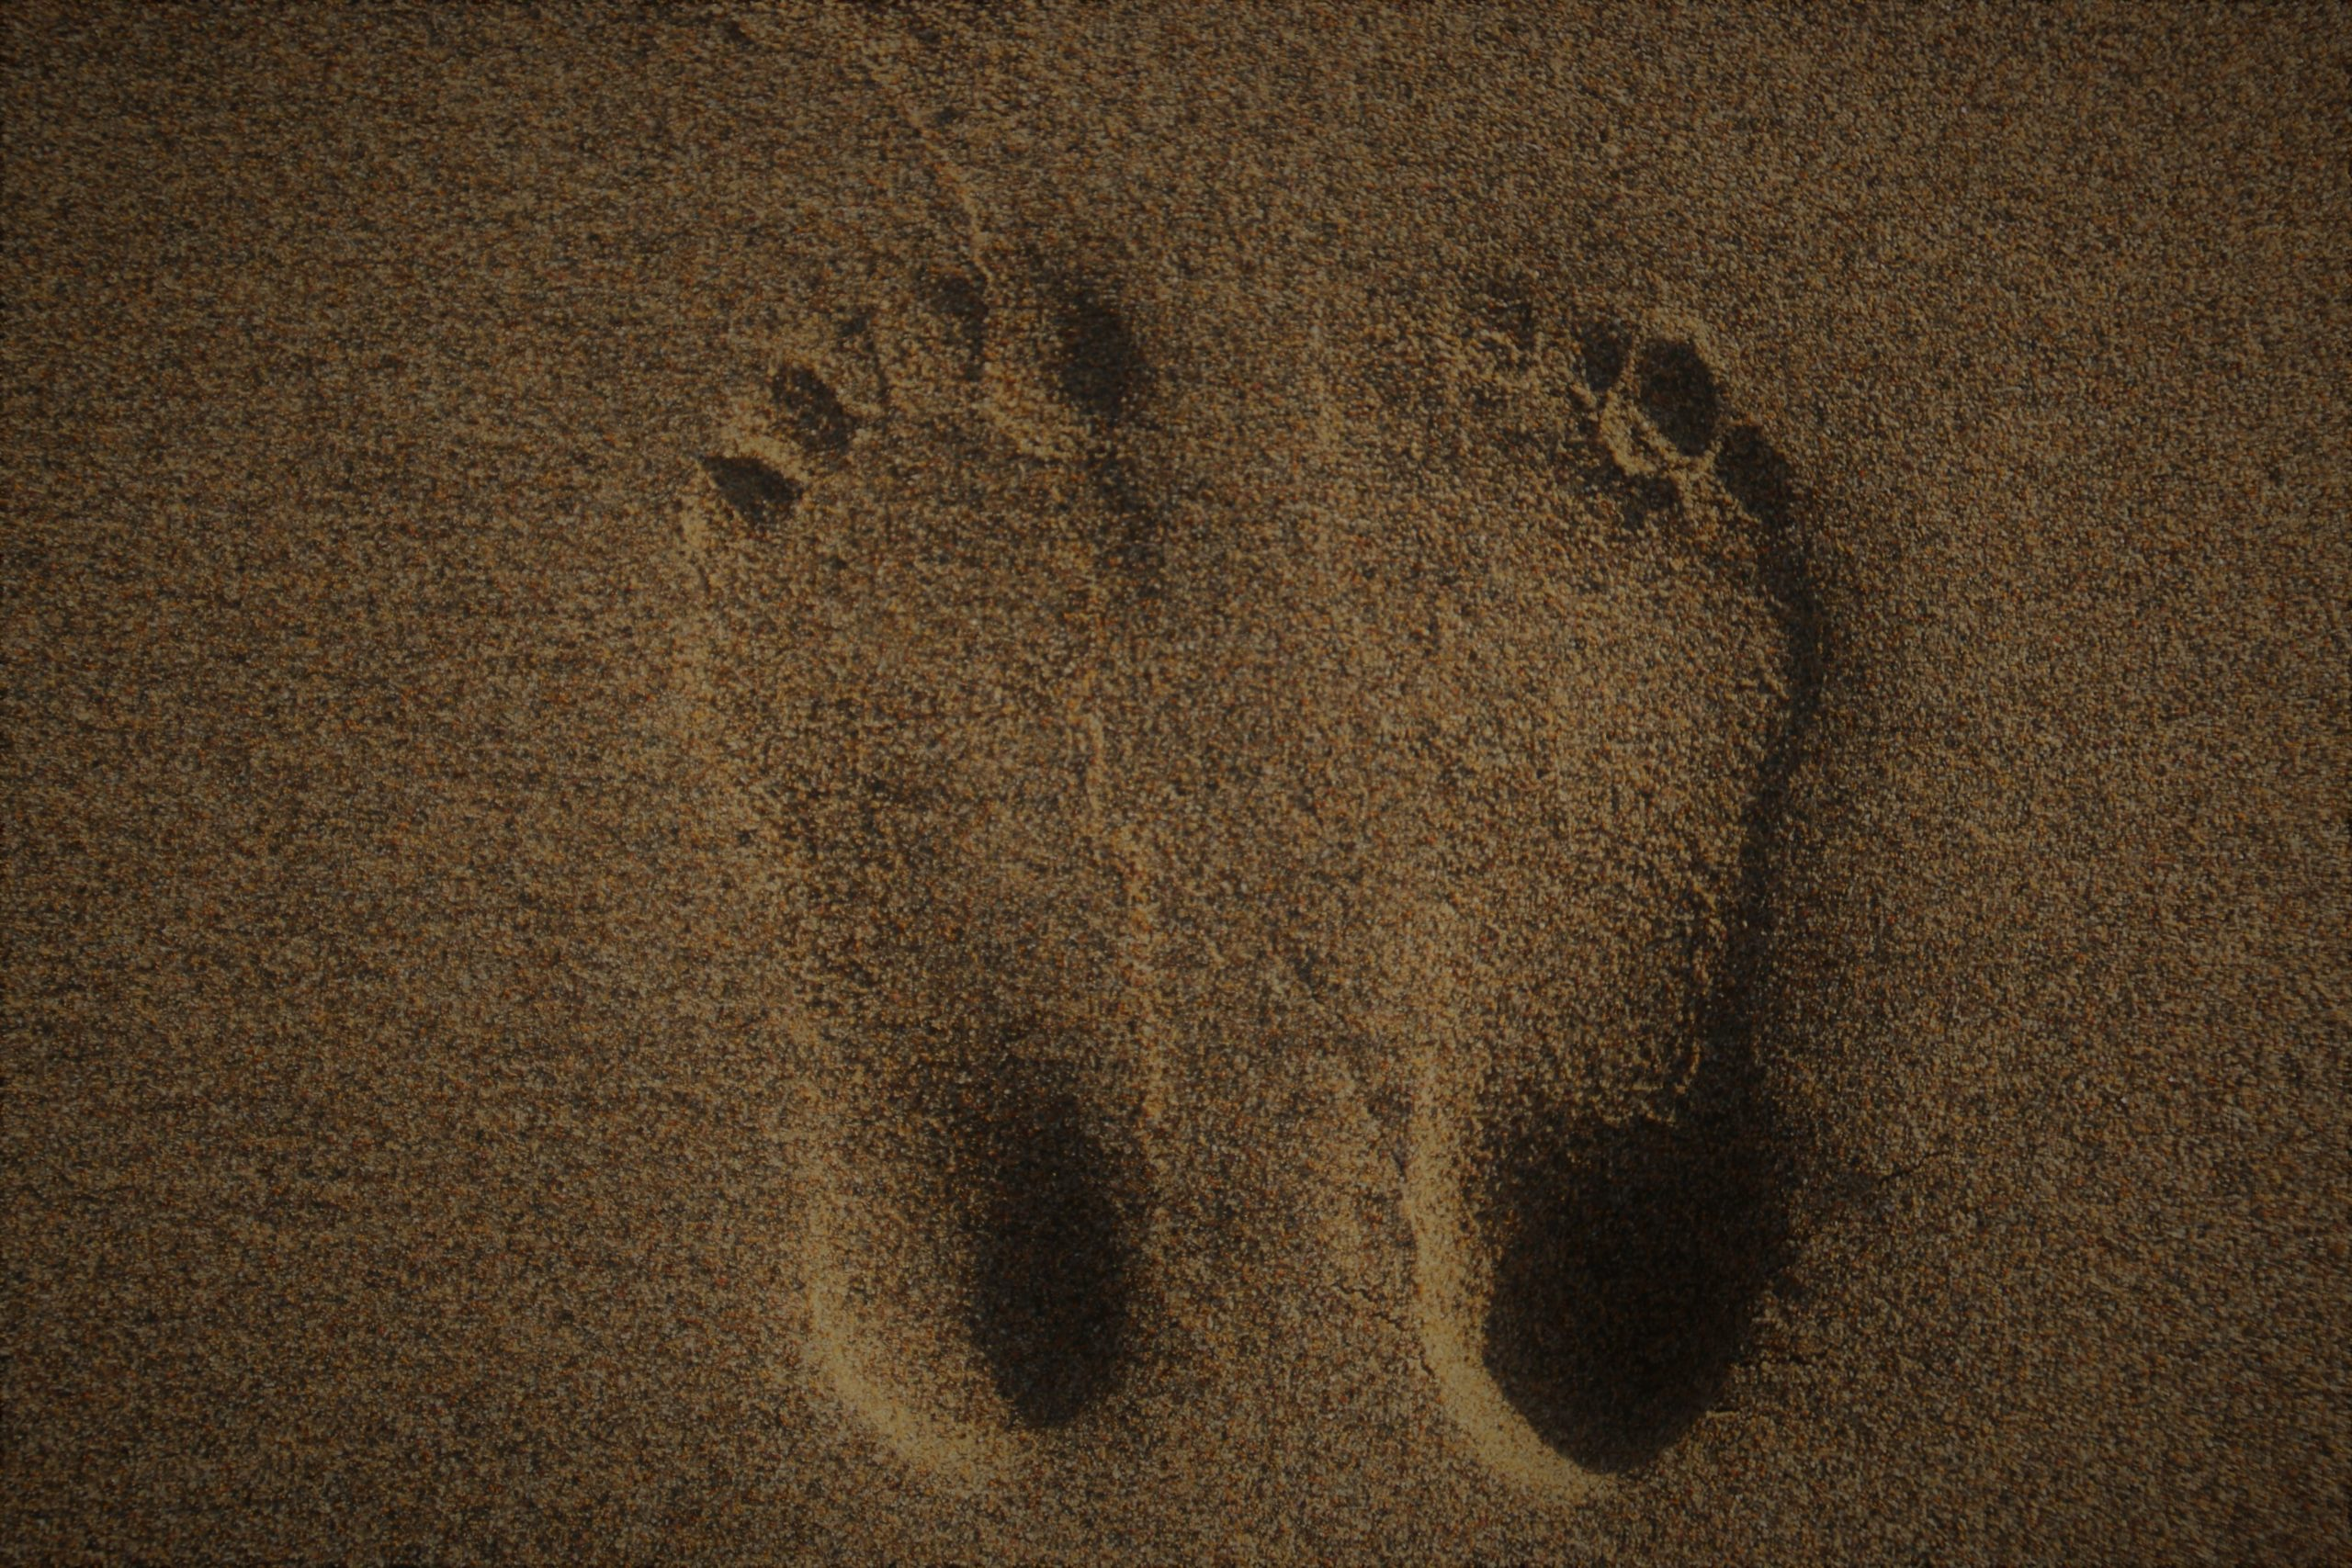 Two foot imprints in the sand